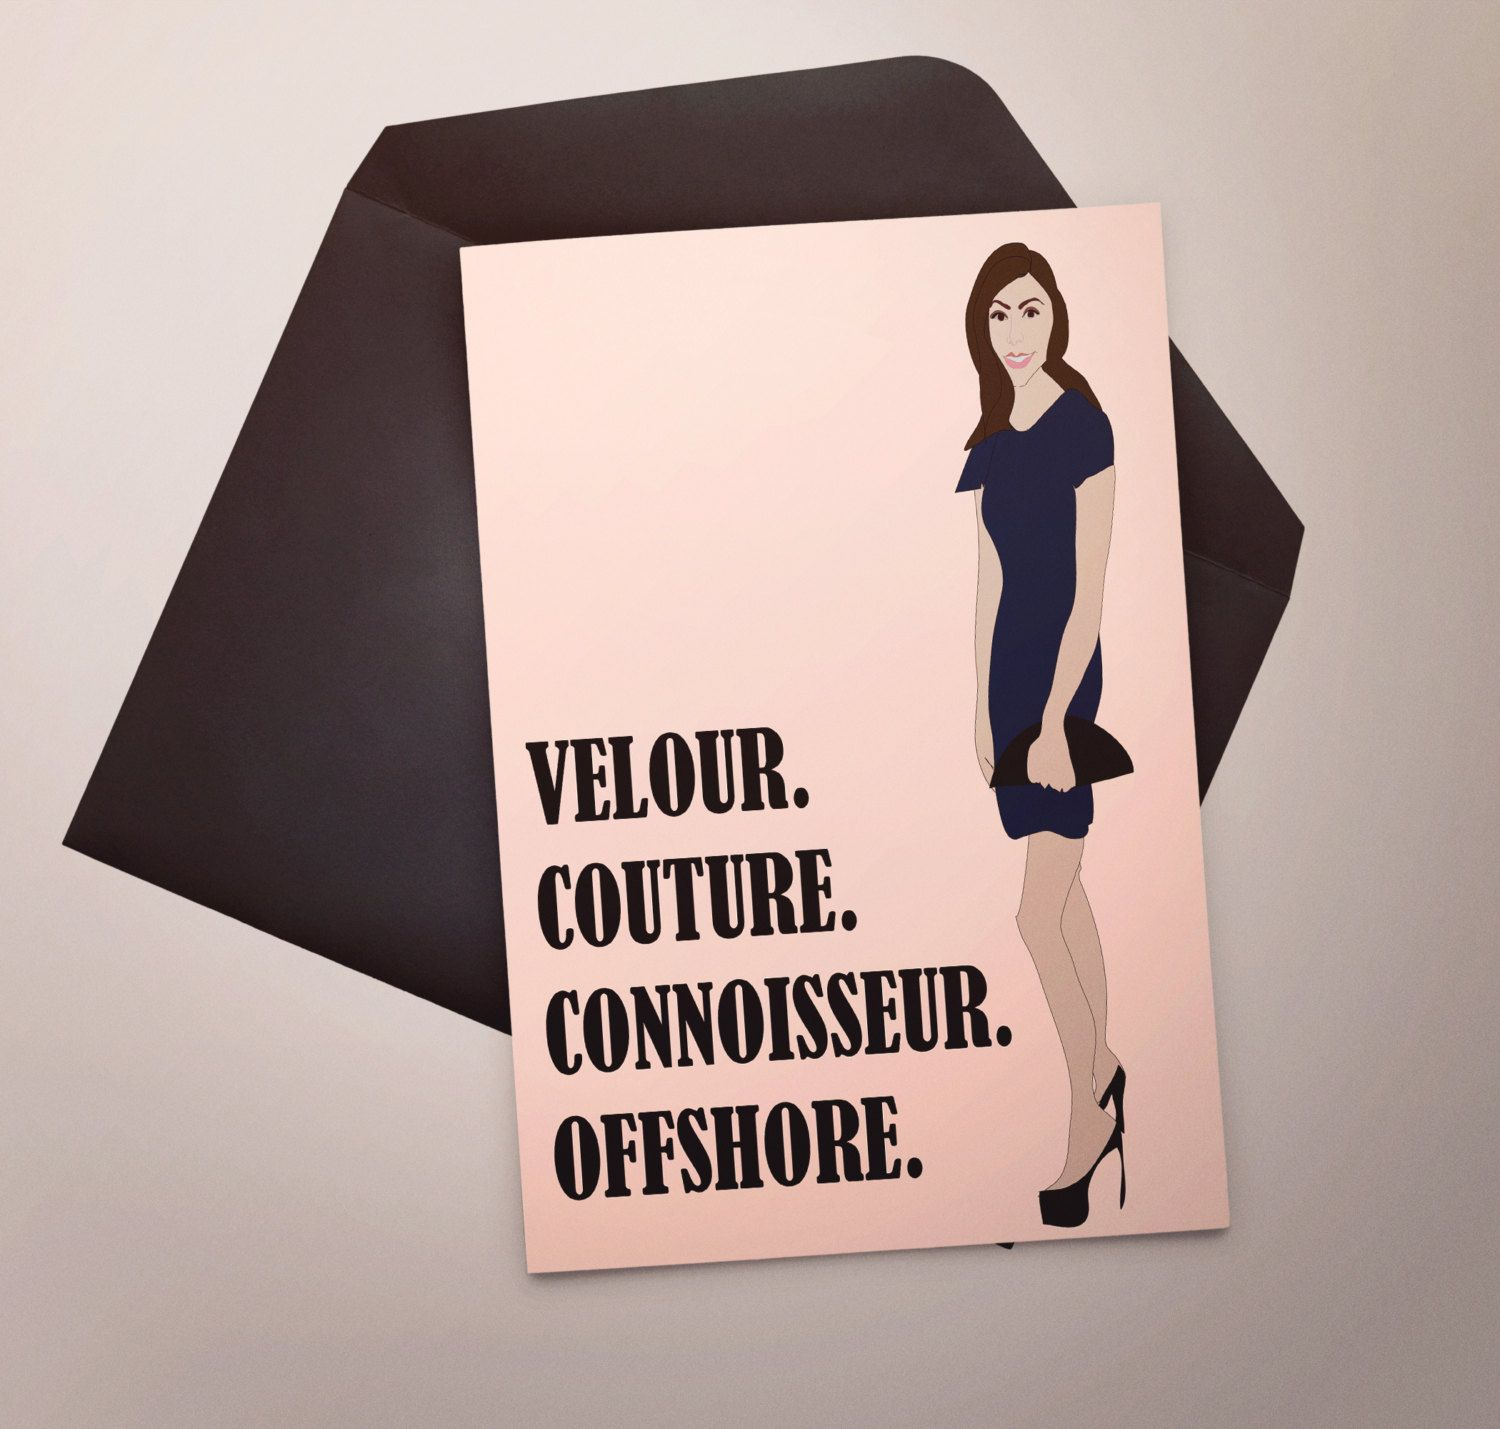 Velour couture connoisseur offshore heather dubrow rhoc real heather dubrow rhoc real housewives of orange county custom card birthday card by greetingsfromyourcat on etsy bookmarktalkfo Choice Image